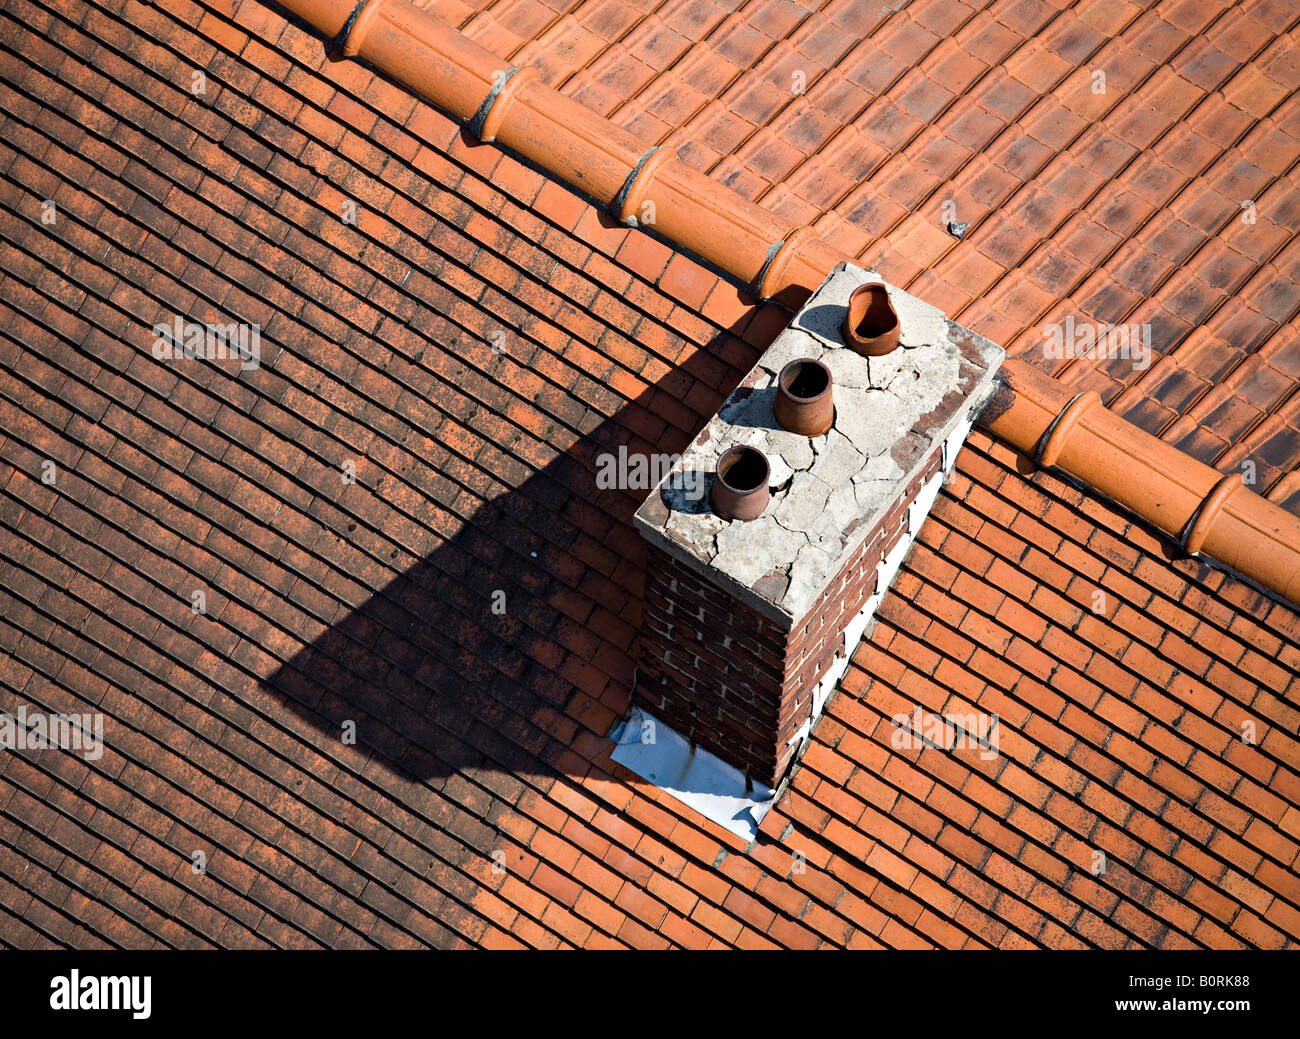 Chimney pots with cracked concrete rendering on tiled roof Belgium - Stock Image